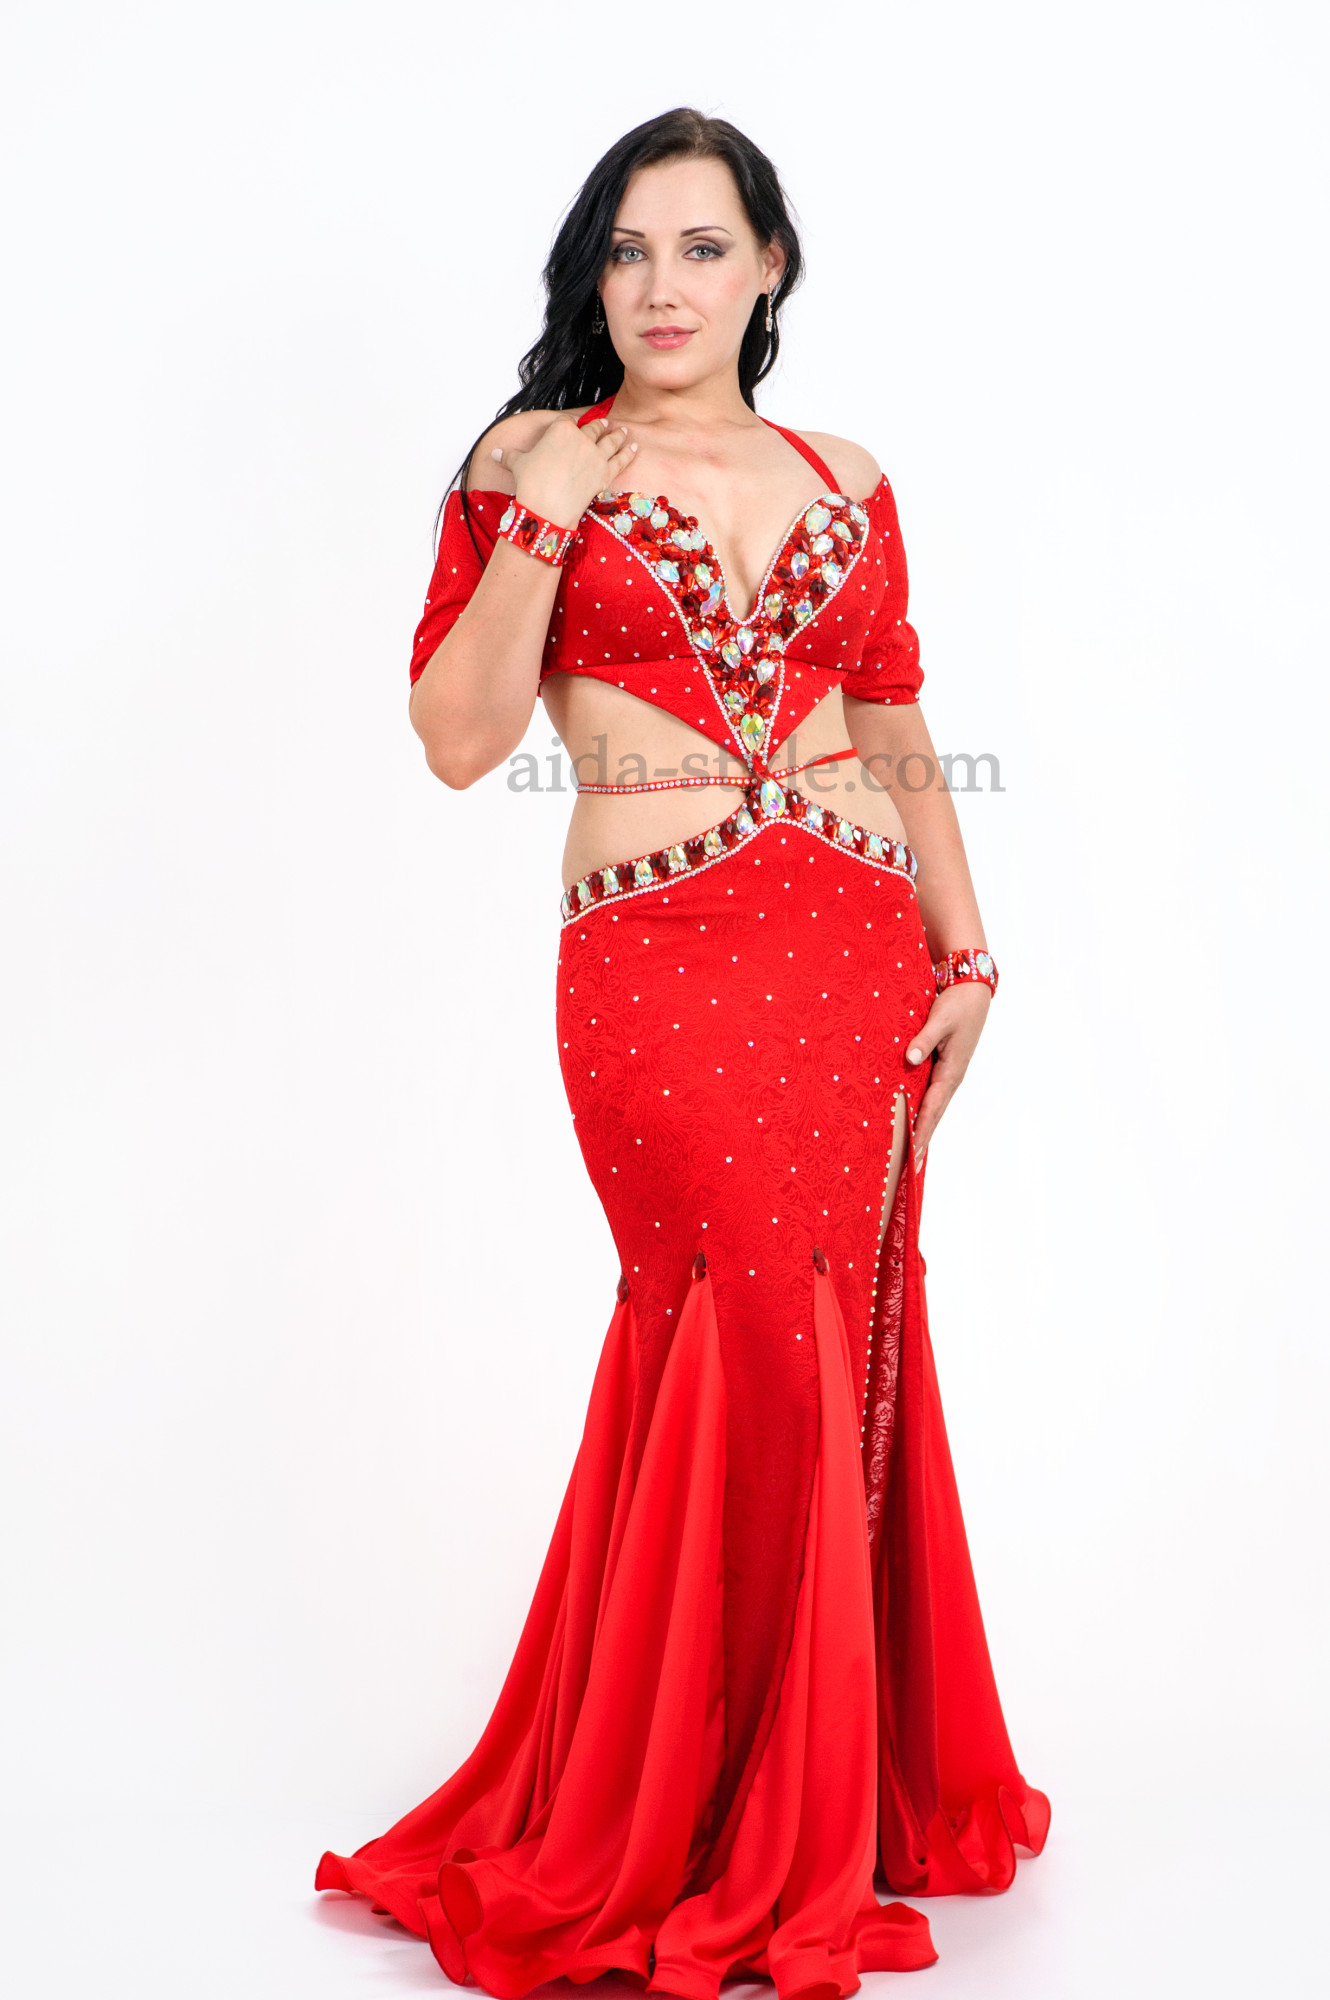 Red professional belly dance dress from Aida Style with a cut on the left side